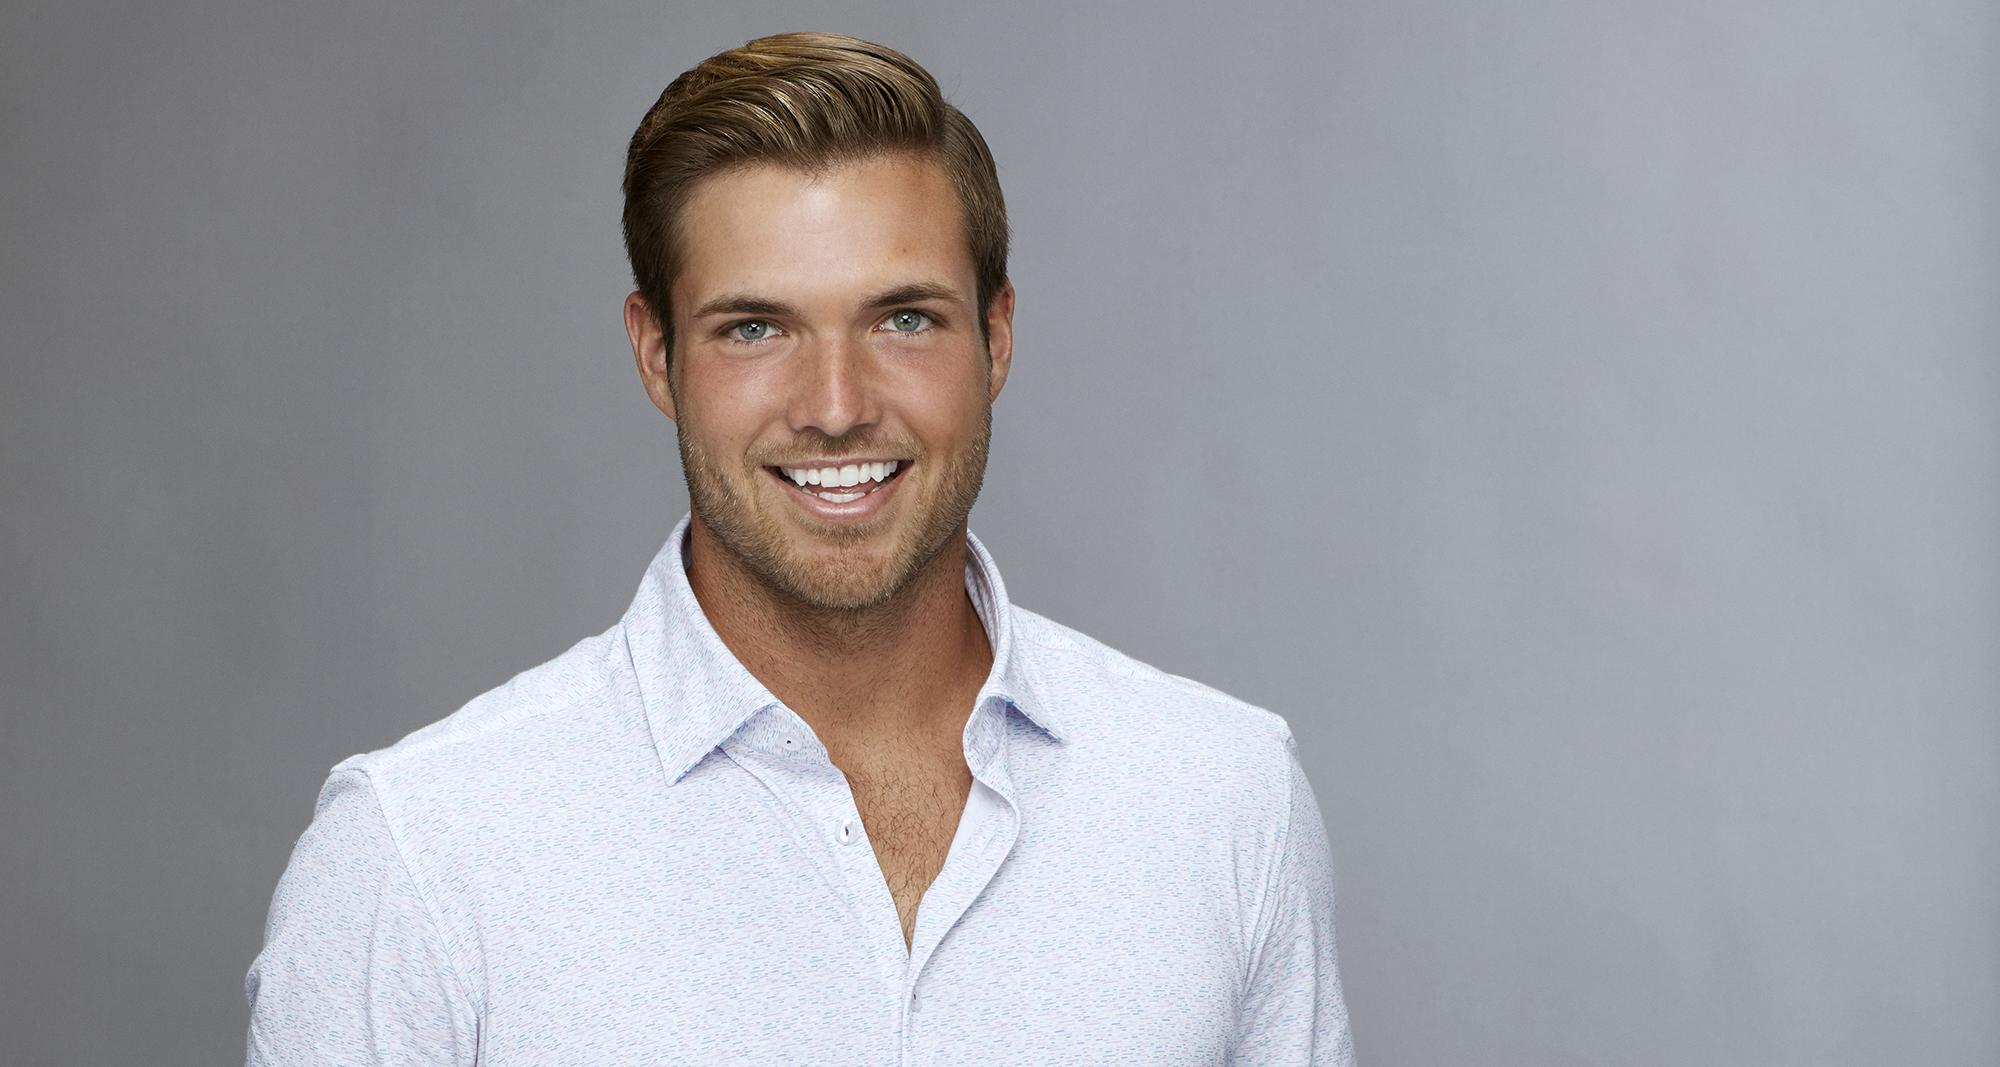 Jordan Kimball from The Bachelorette